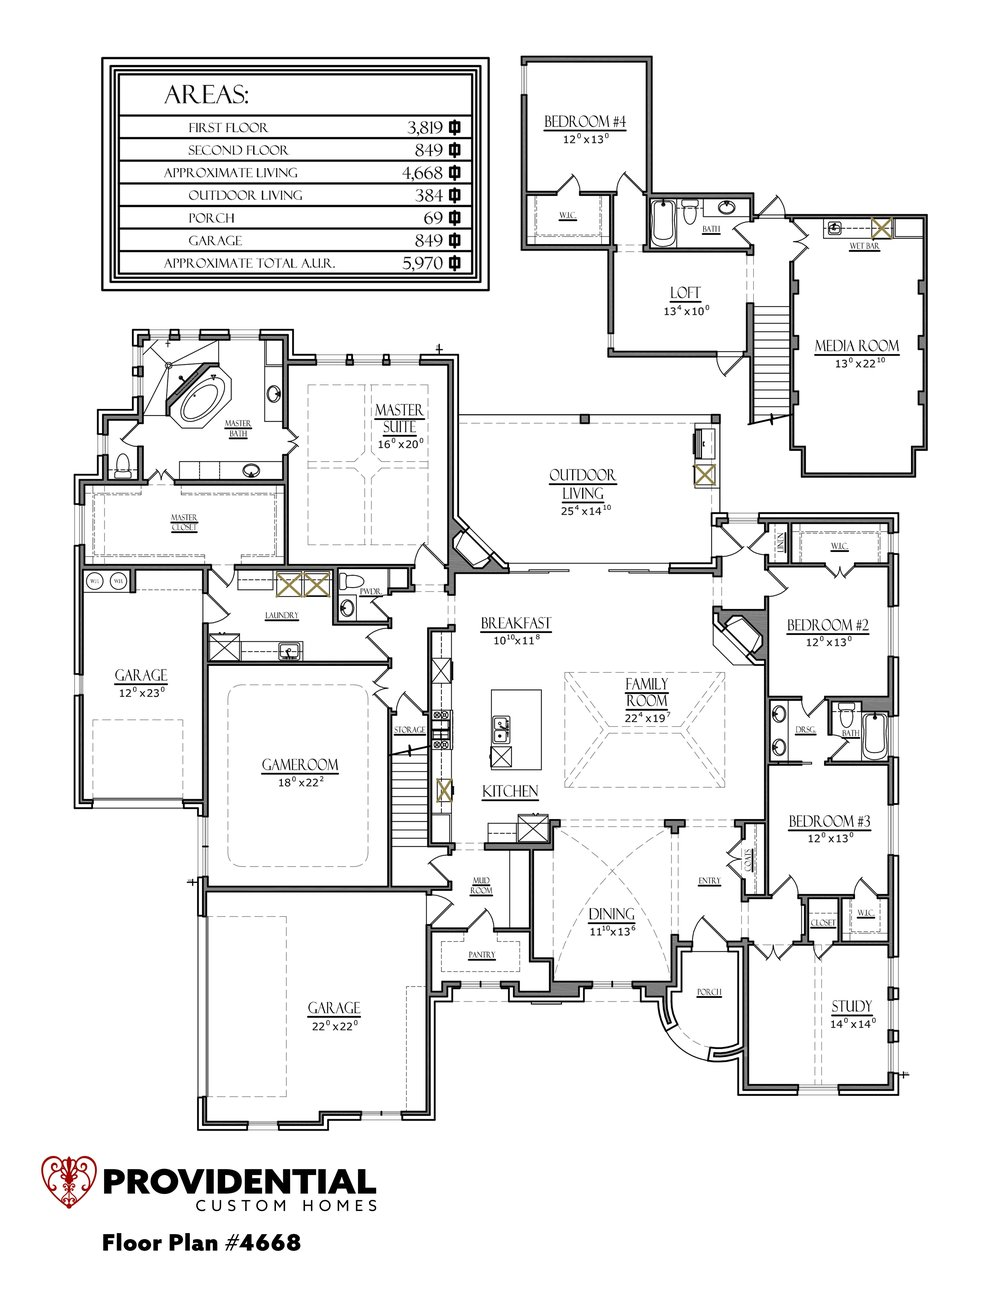 The FLOOR PLAN #4668.jpg